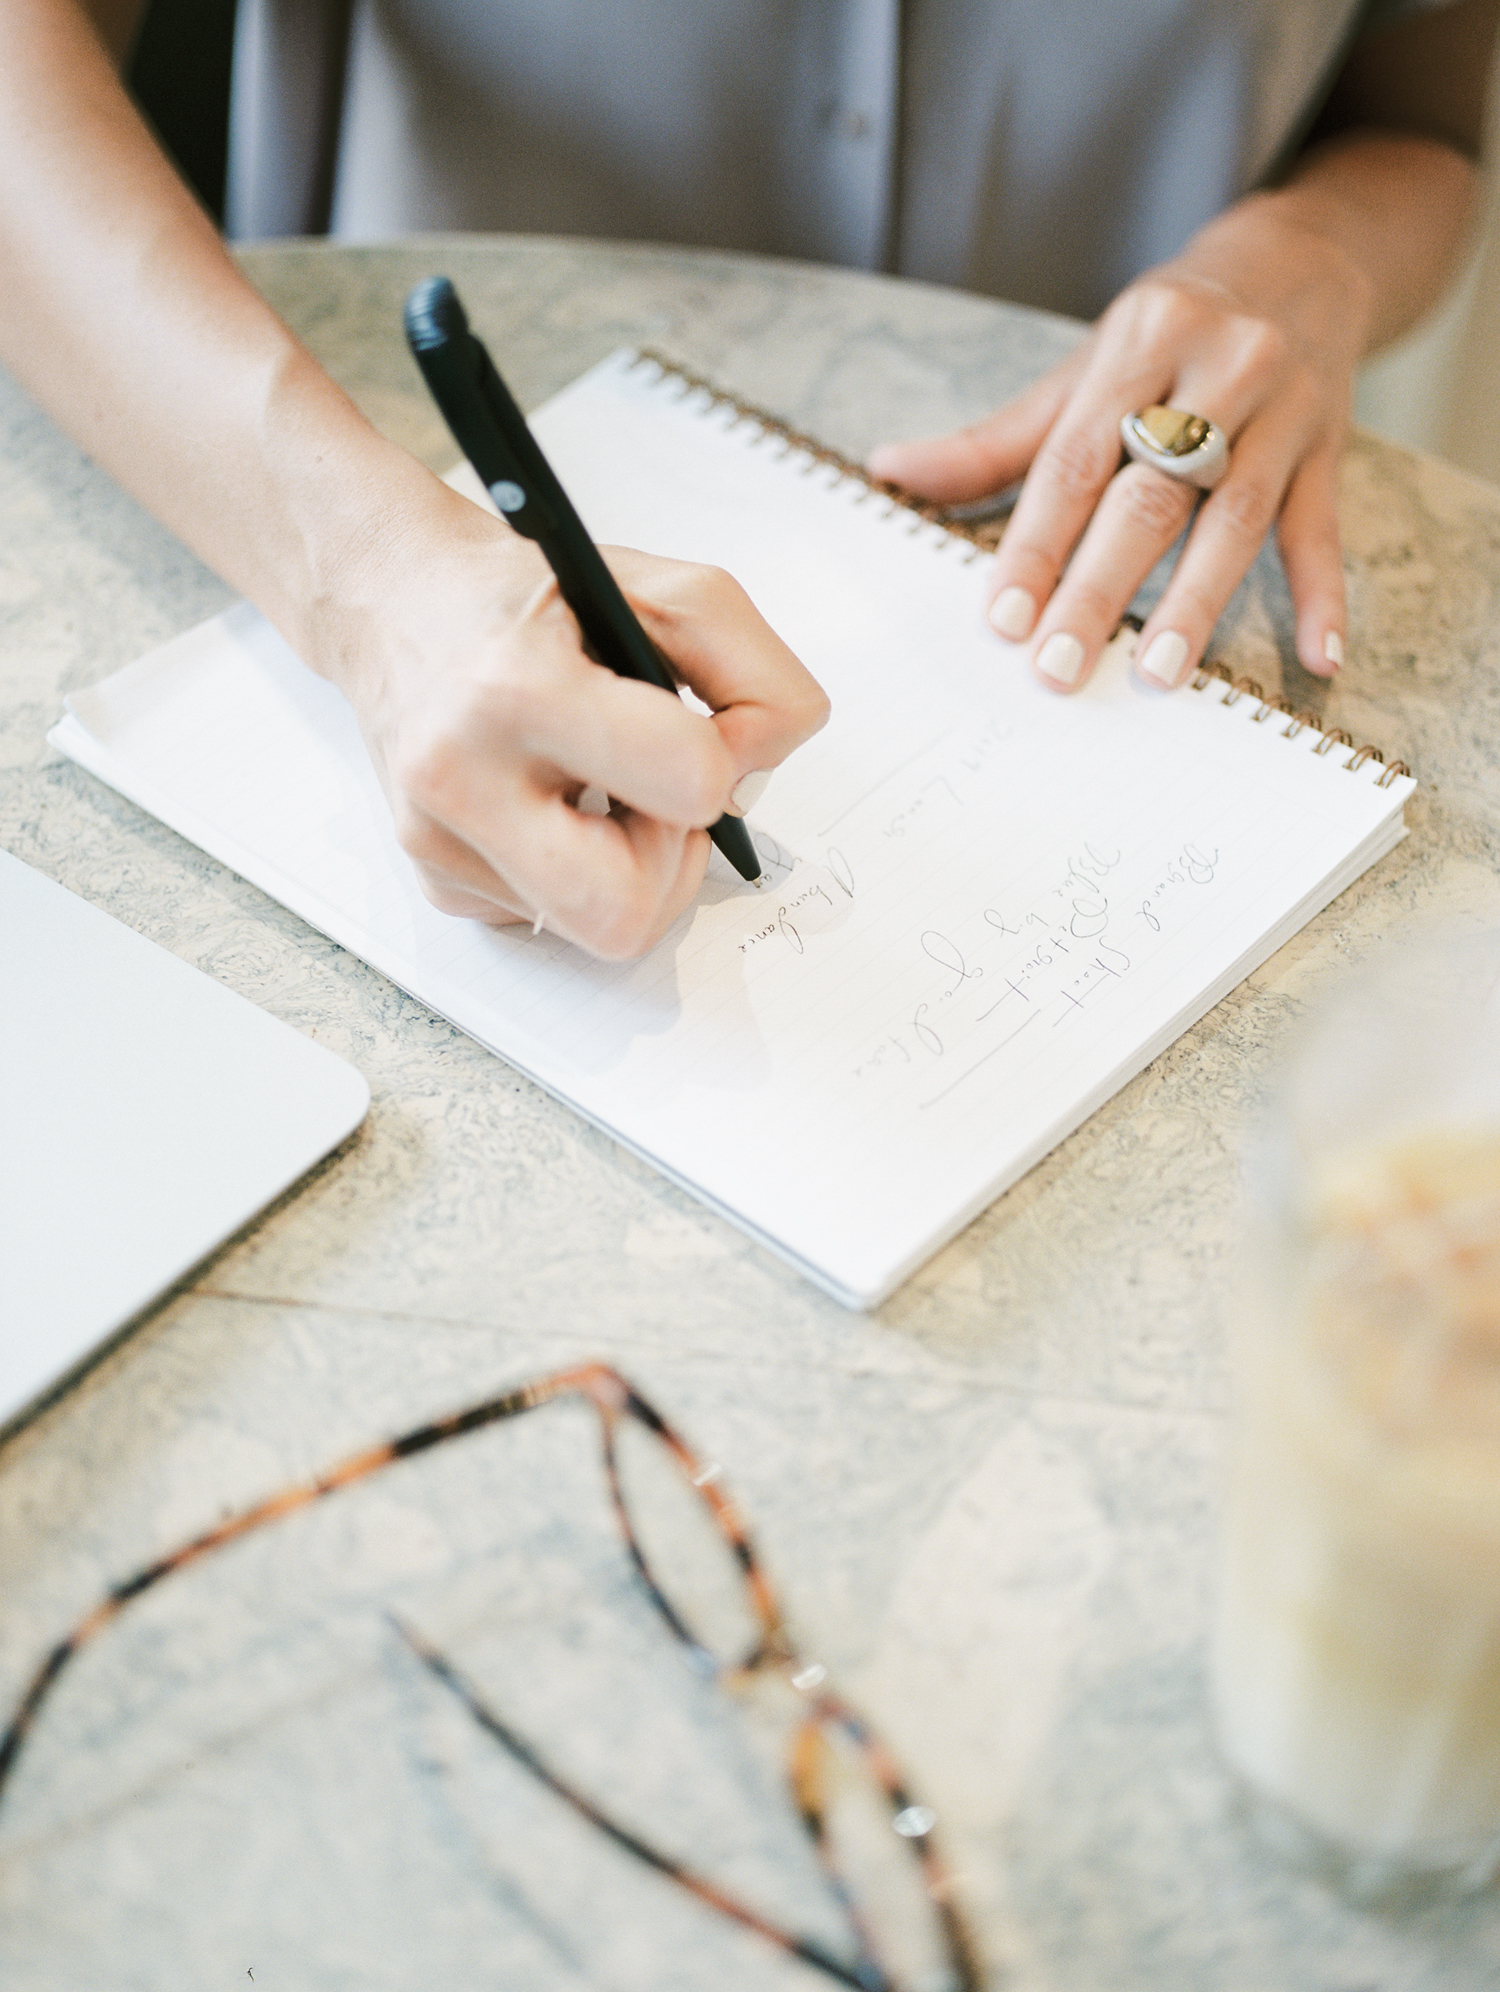 A female business owner and designer writes in a notebook at a Detroit coffee shop during her film brand photoshoot